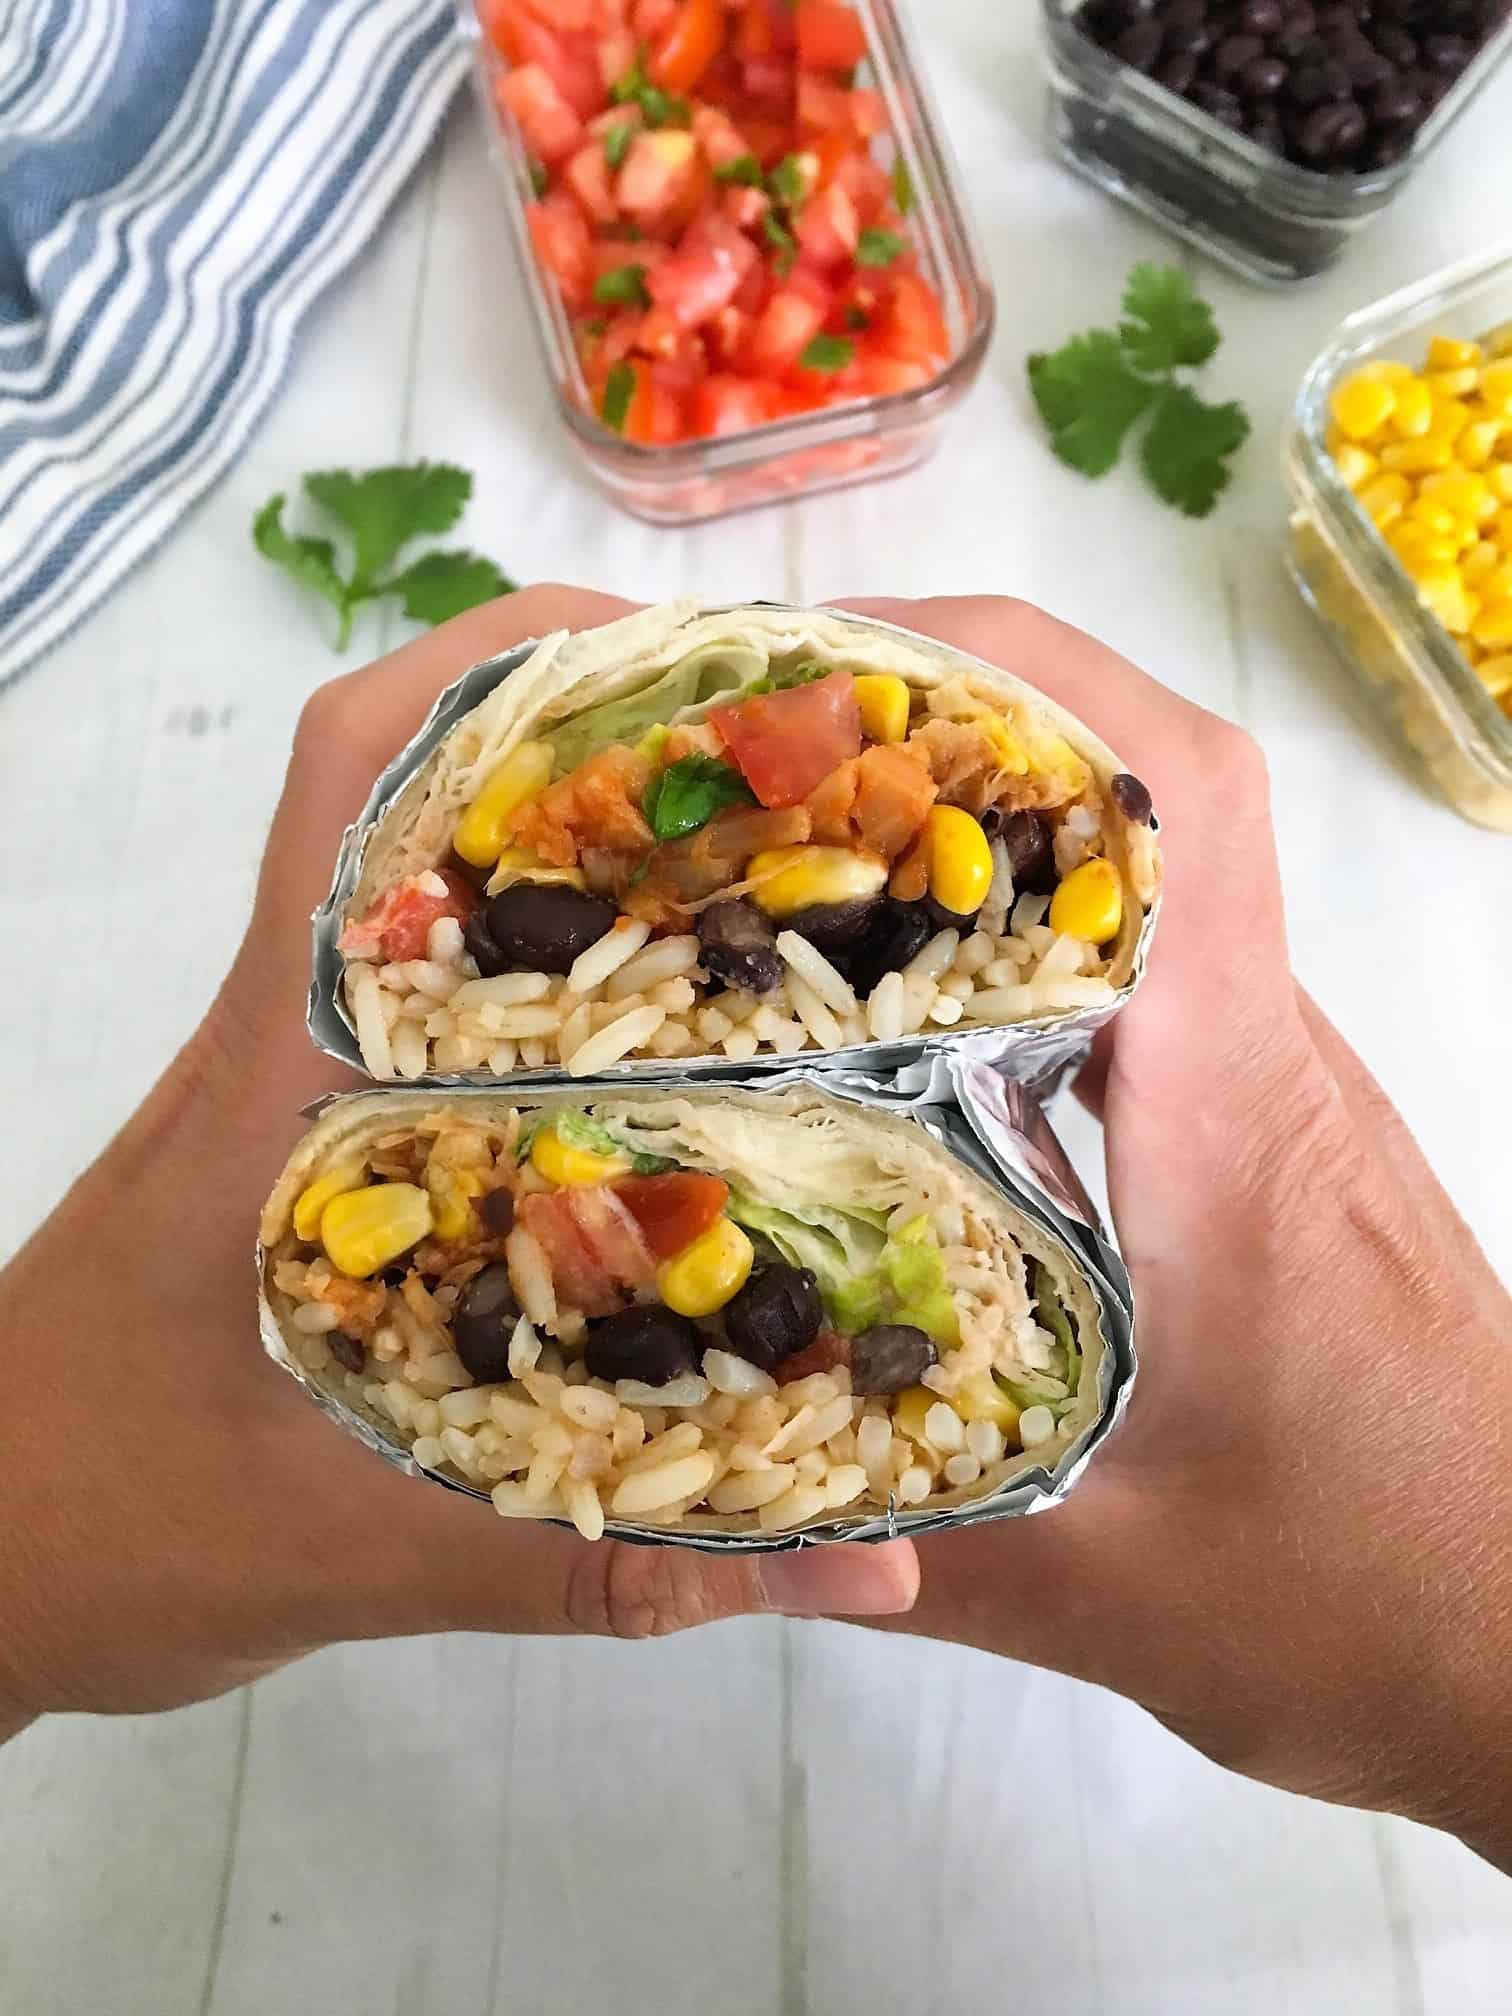 burritos stuffed with jackfruit, beans, corn, rice and lettuce being held up in hands